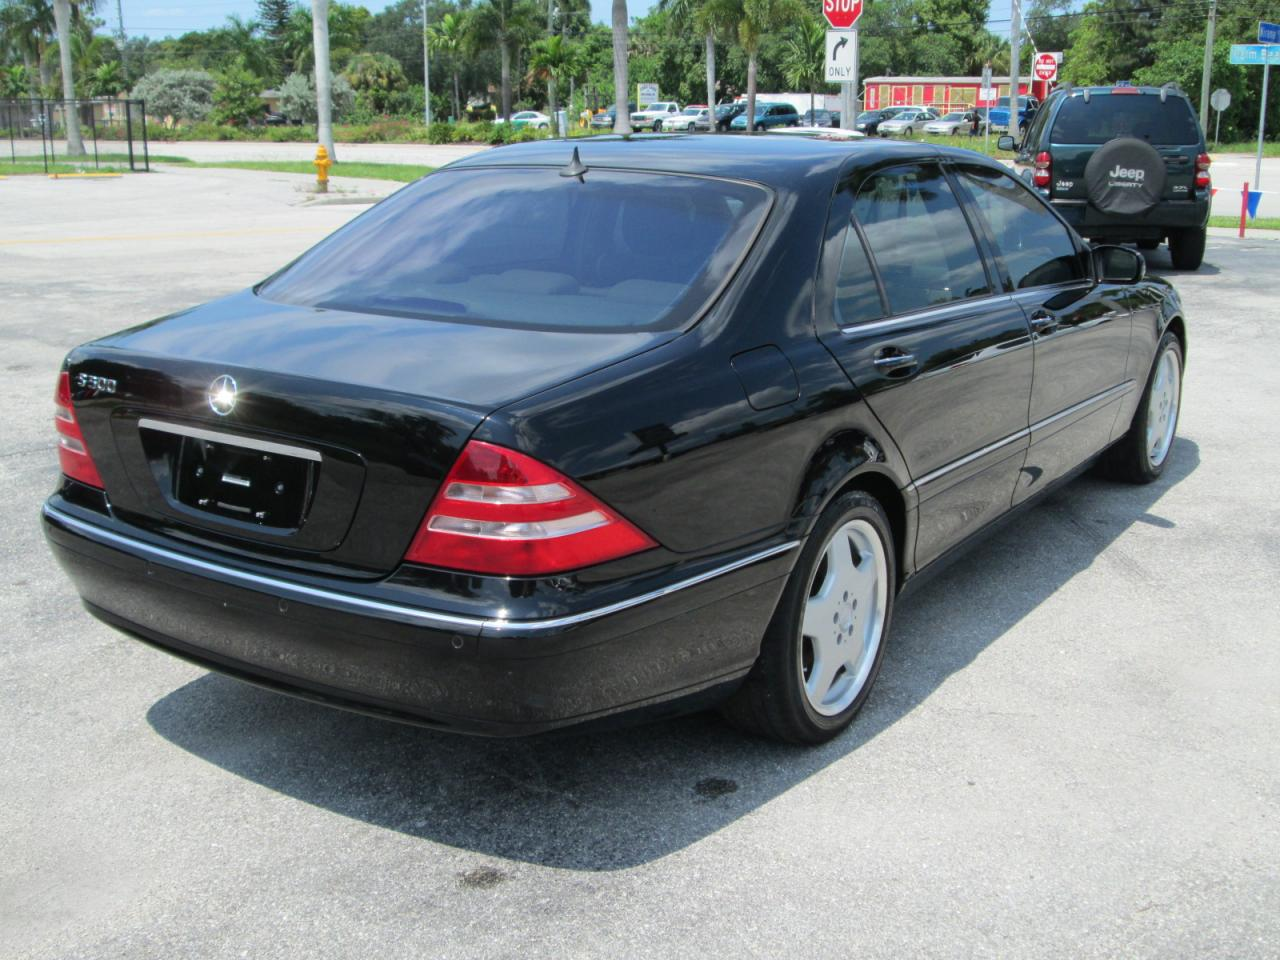 2001 mercedes benz s class information and photos for Mercedes benz s class 2001